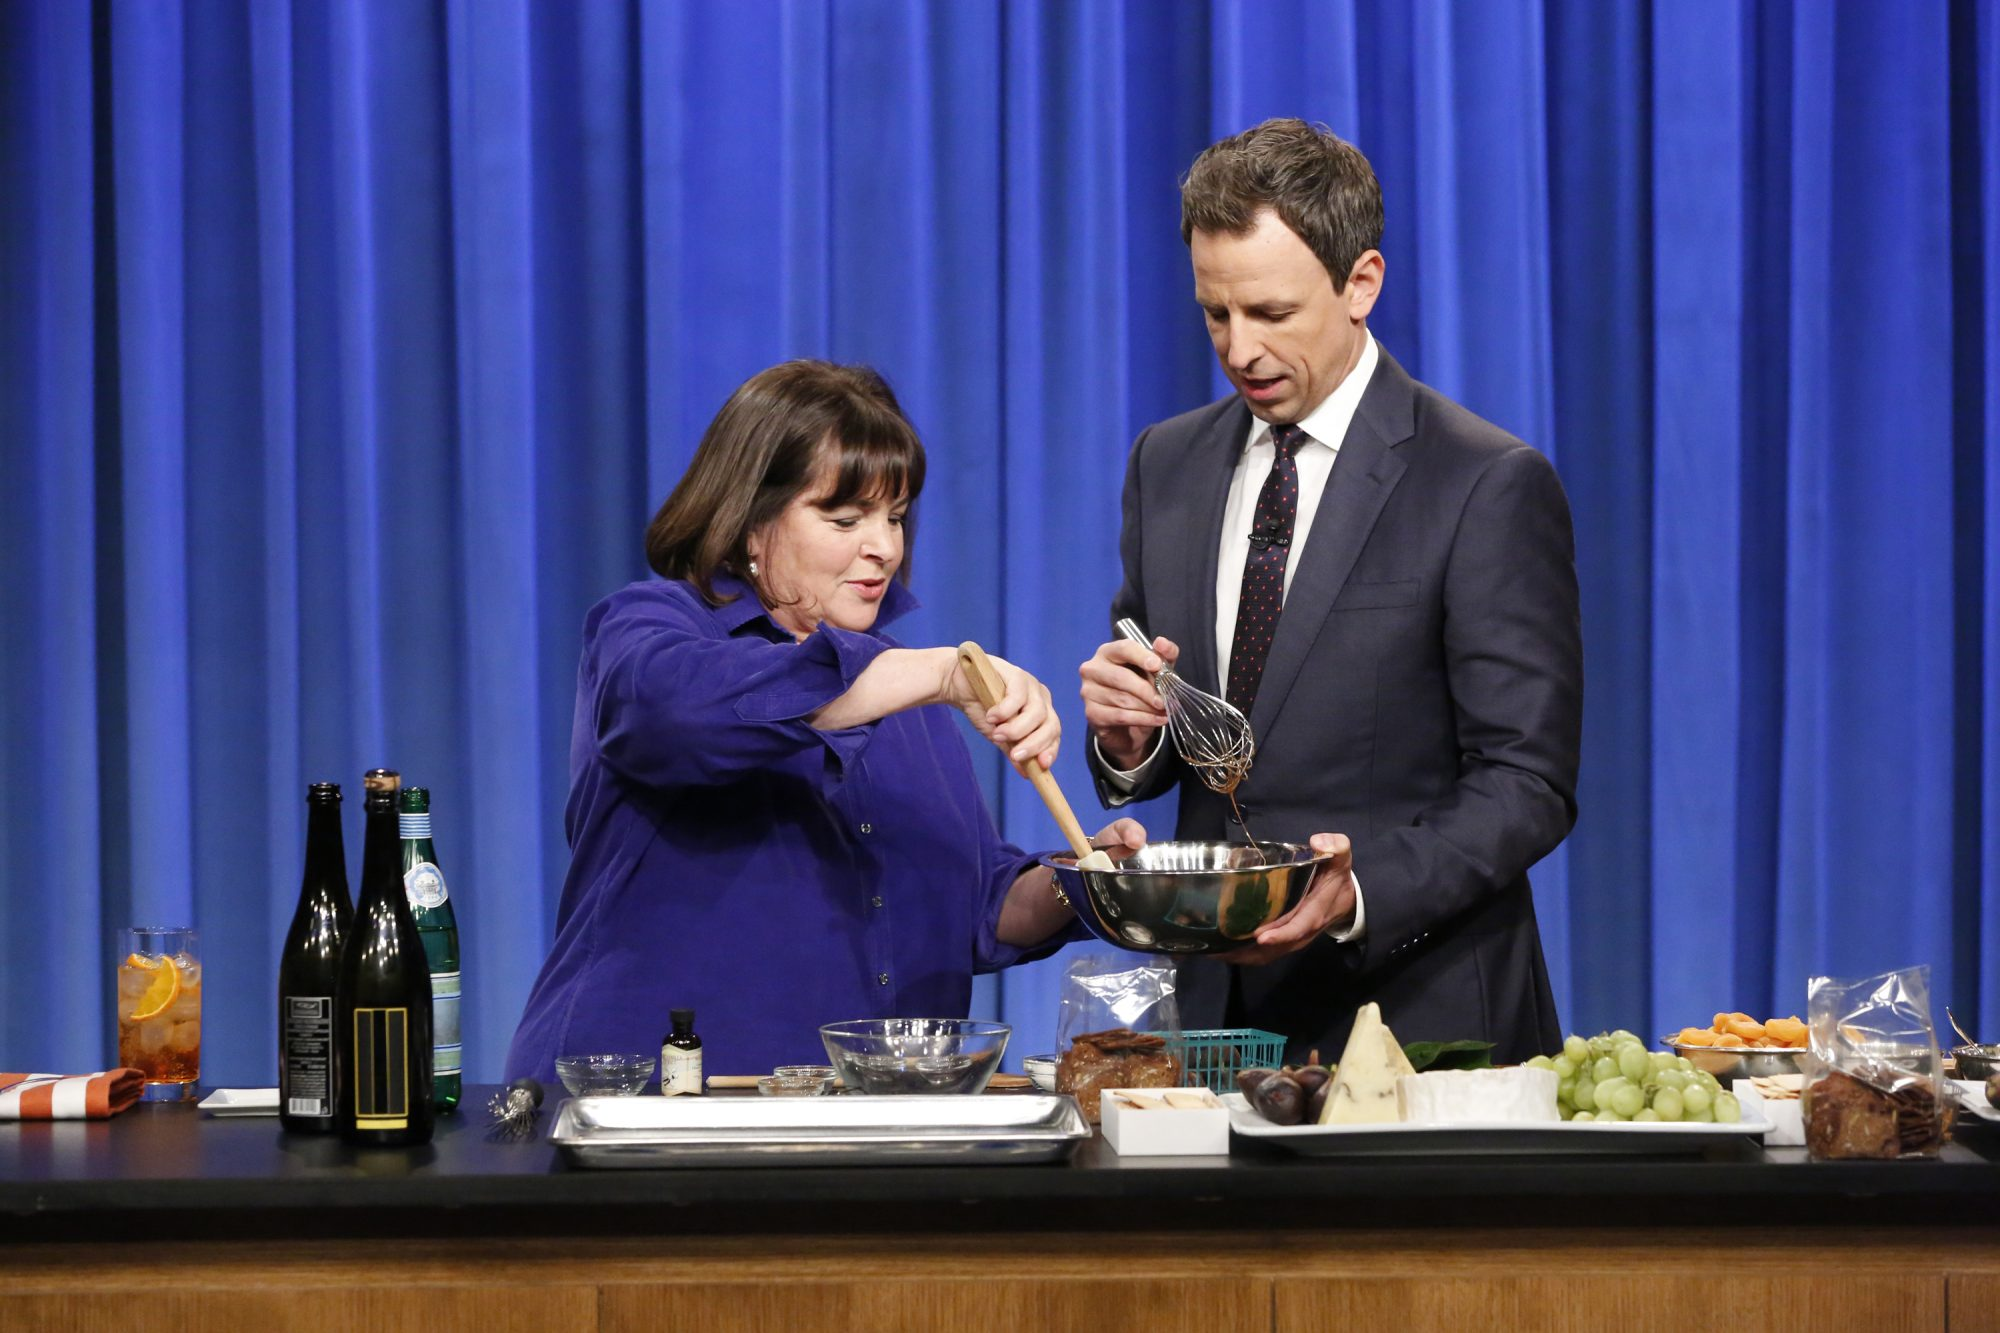 Ina Garten and Seth Meyers